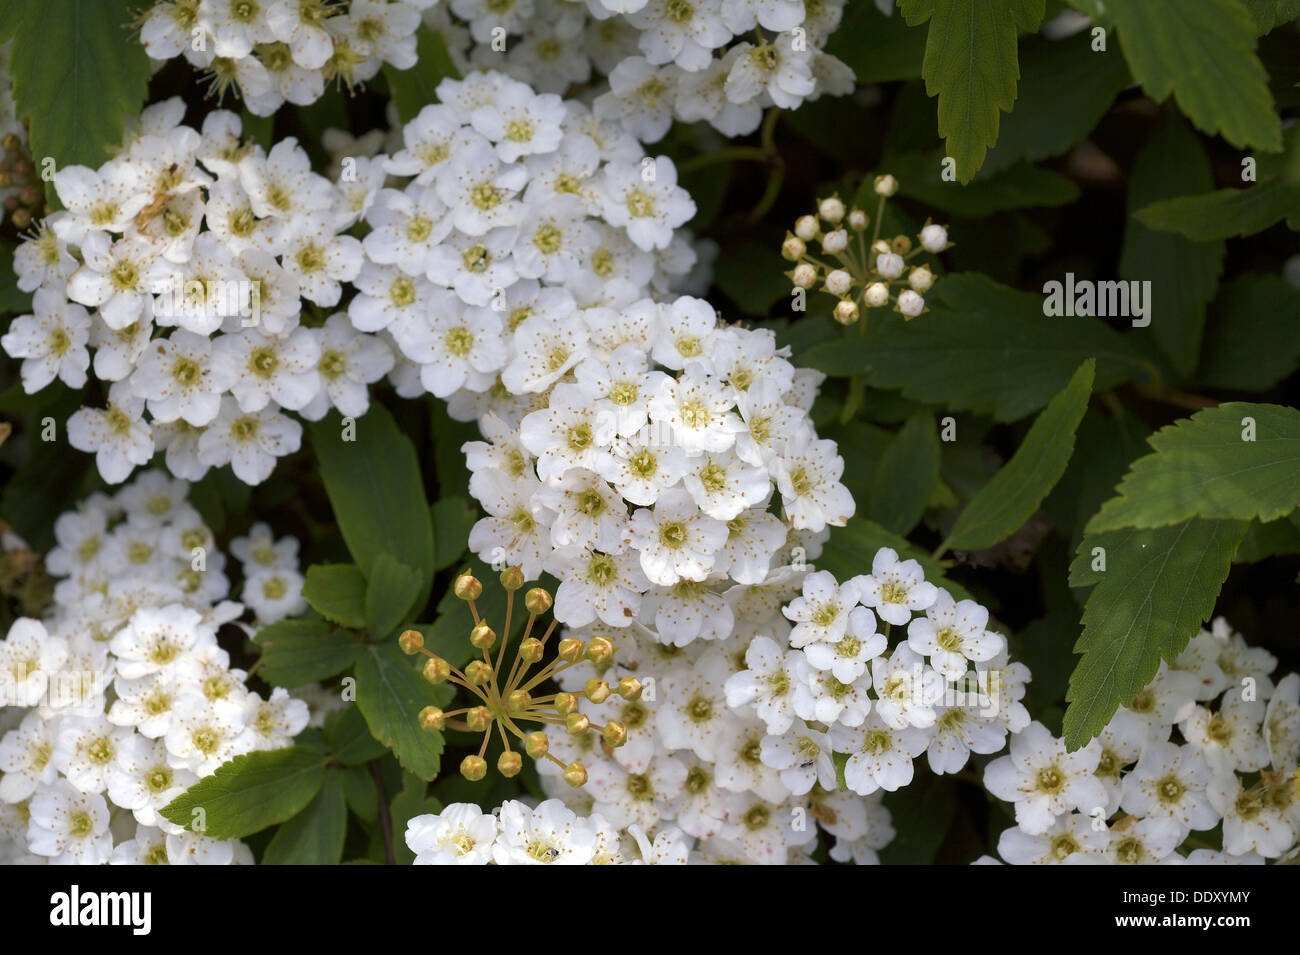 Flowers of Spiraea arguta, Sant´Agata de Goti. Province of Benevento, Campania, Italy Stock Photo